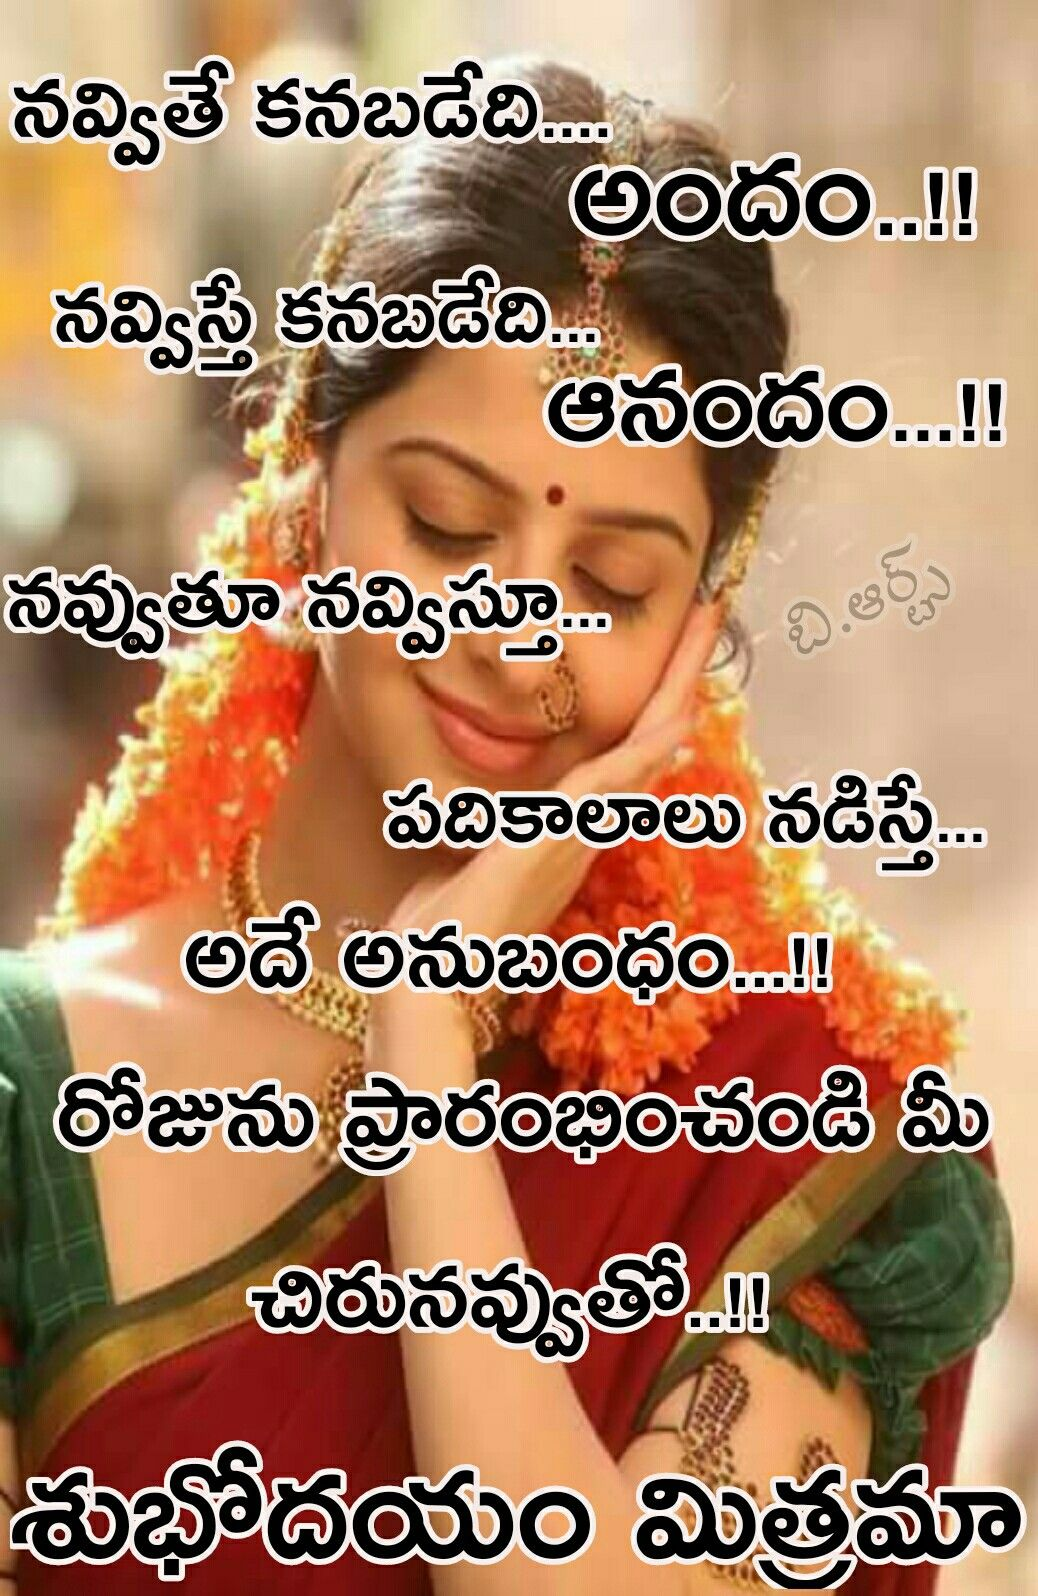 Pin By Devianuradha Pilaka On Gopi Good Mrng Quotes Morning Greetings Quotes Morning Love Quotes